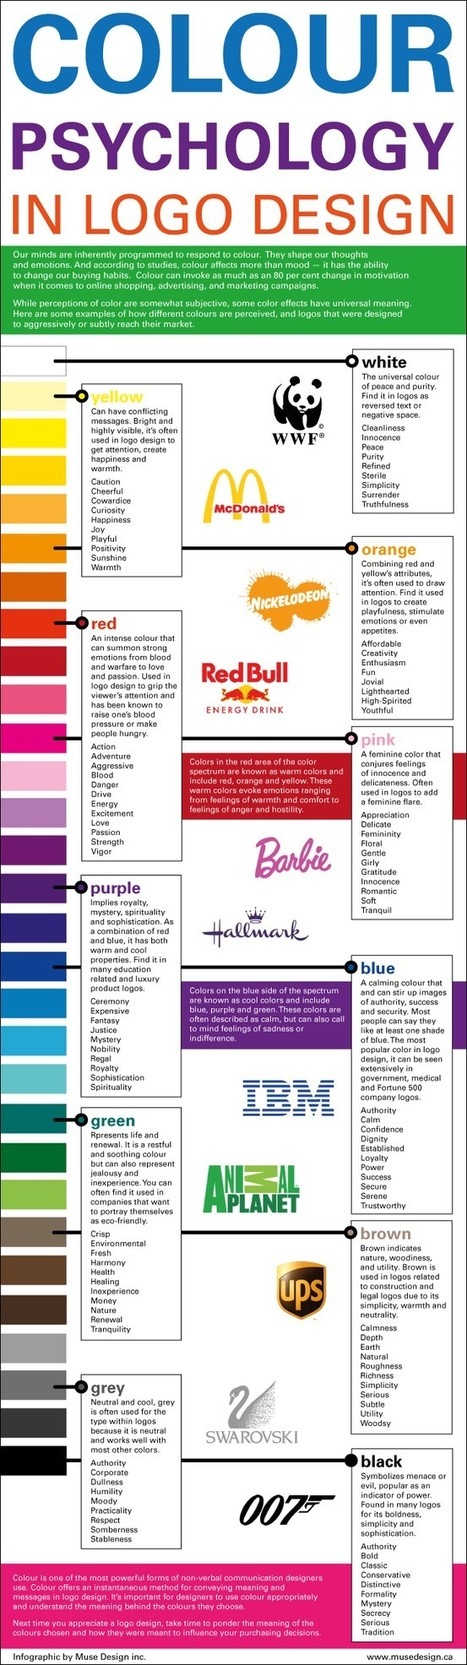 Lessons In Cool Color Psychology From Power Logo Designs | Doeland's Digitale Wereld | Scoop.it